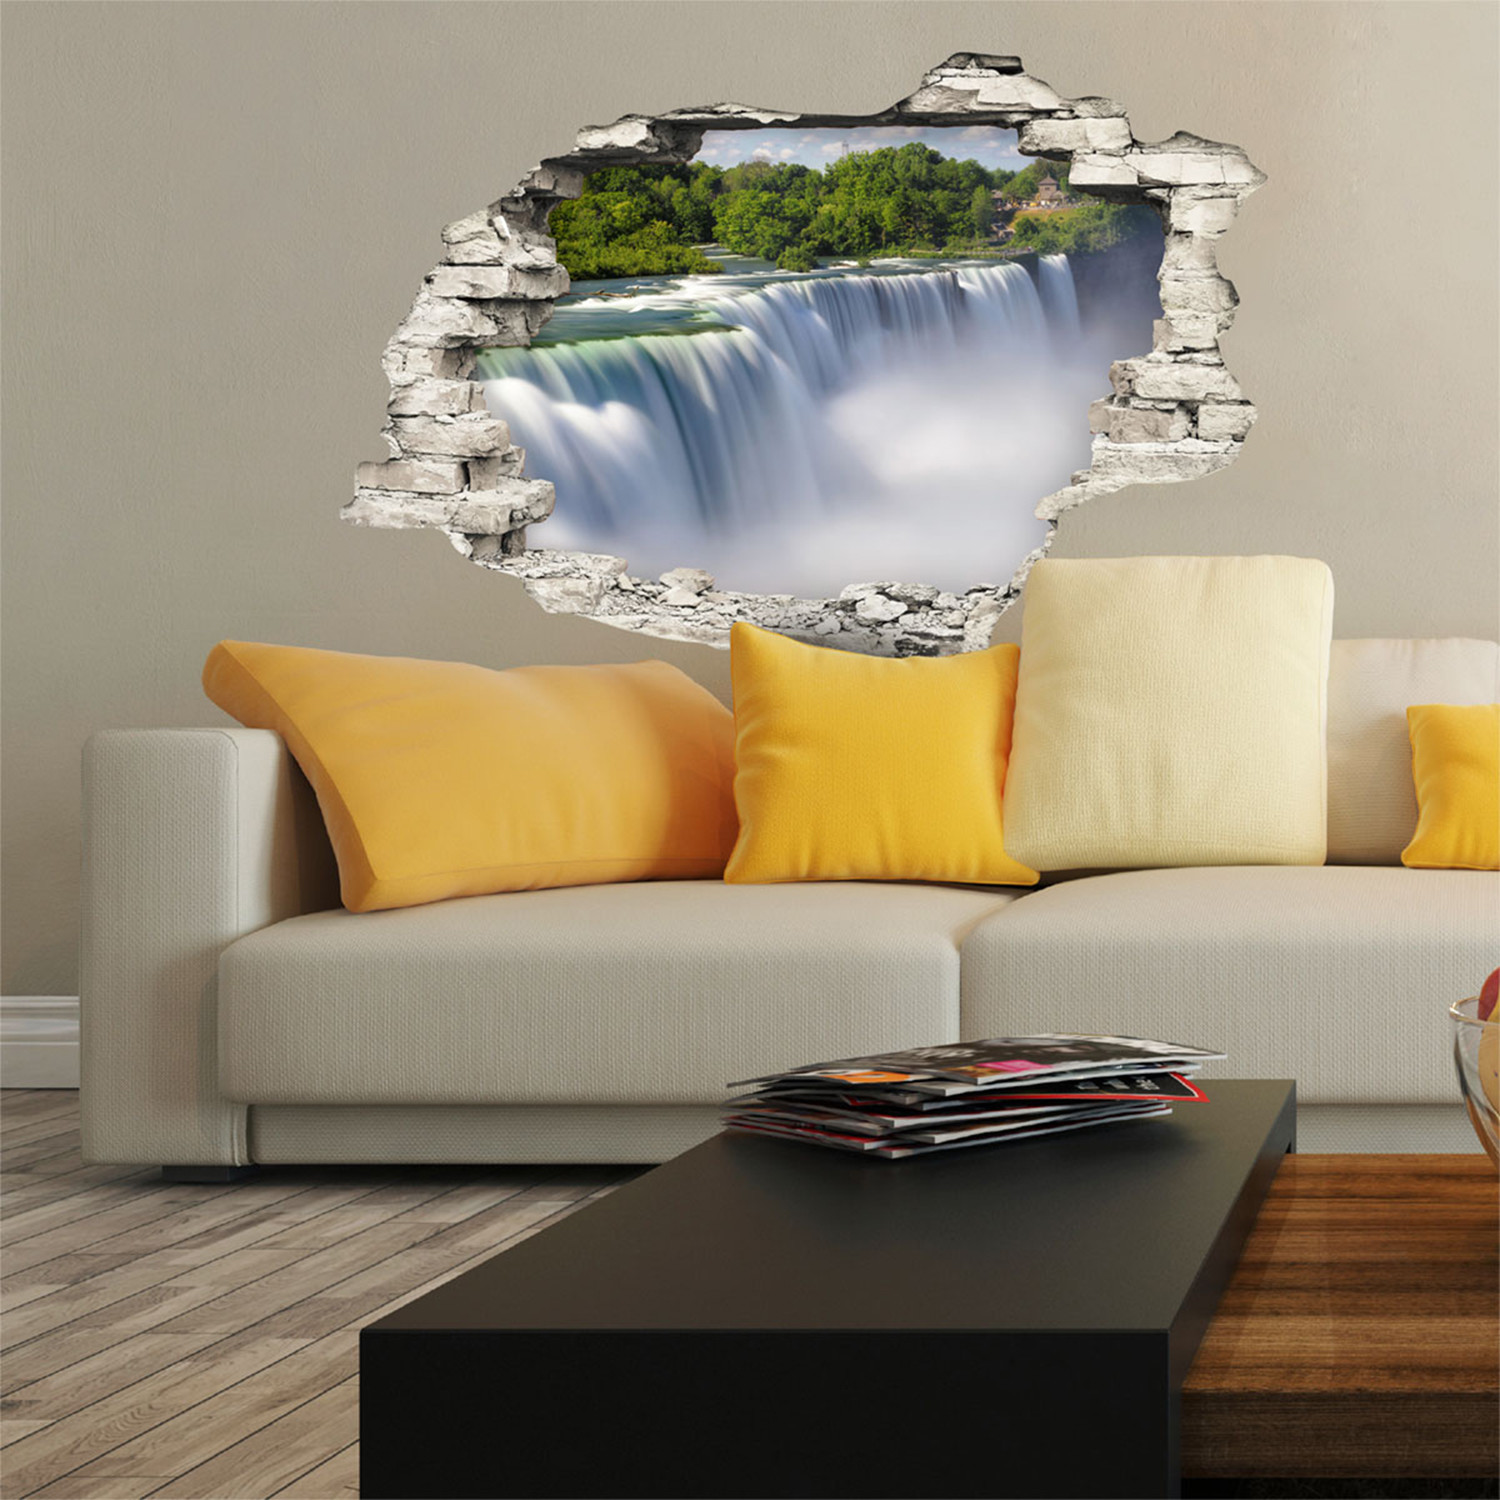 Niagara Falls - 3D Wall Decals - Touch of Modern